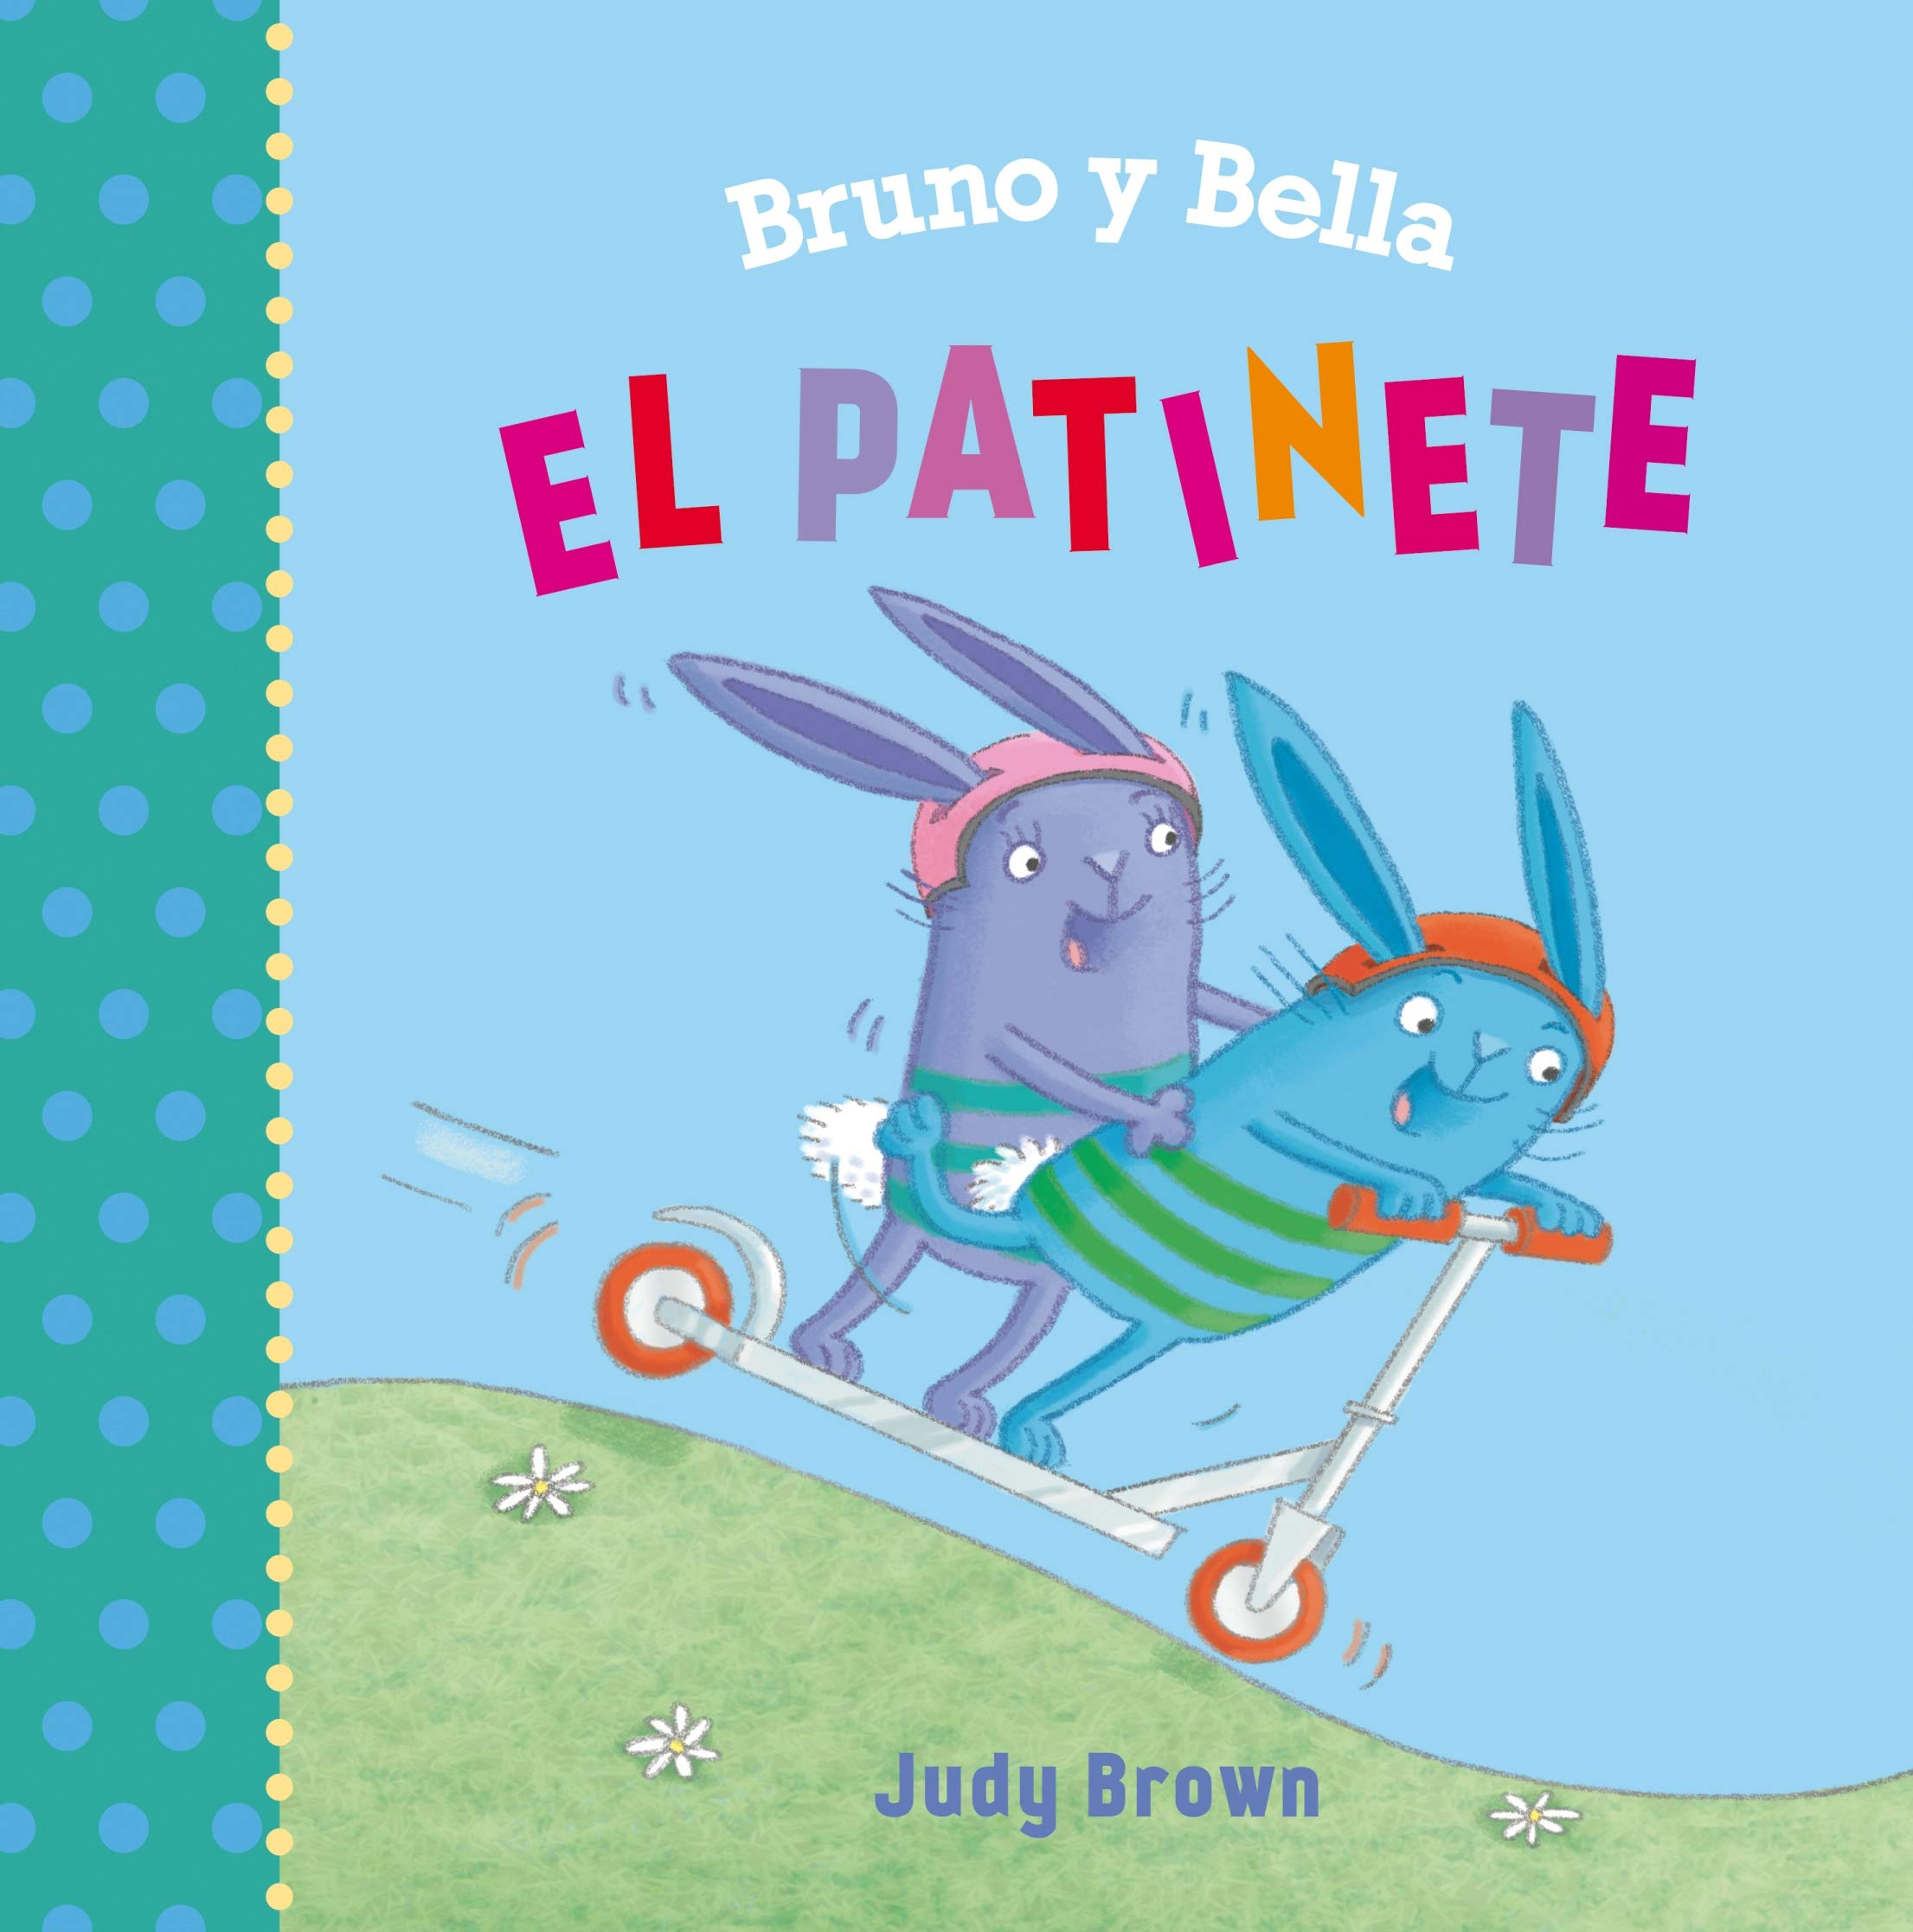 Bruno y Bella. El patinete (PICARONA): Amazon.es: JUDY BROWN ...